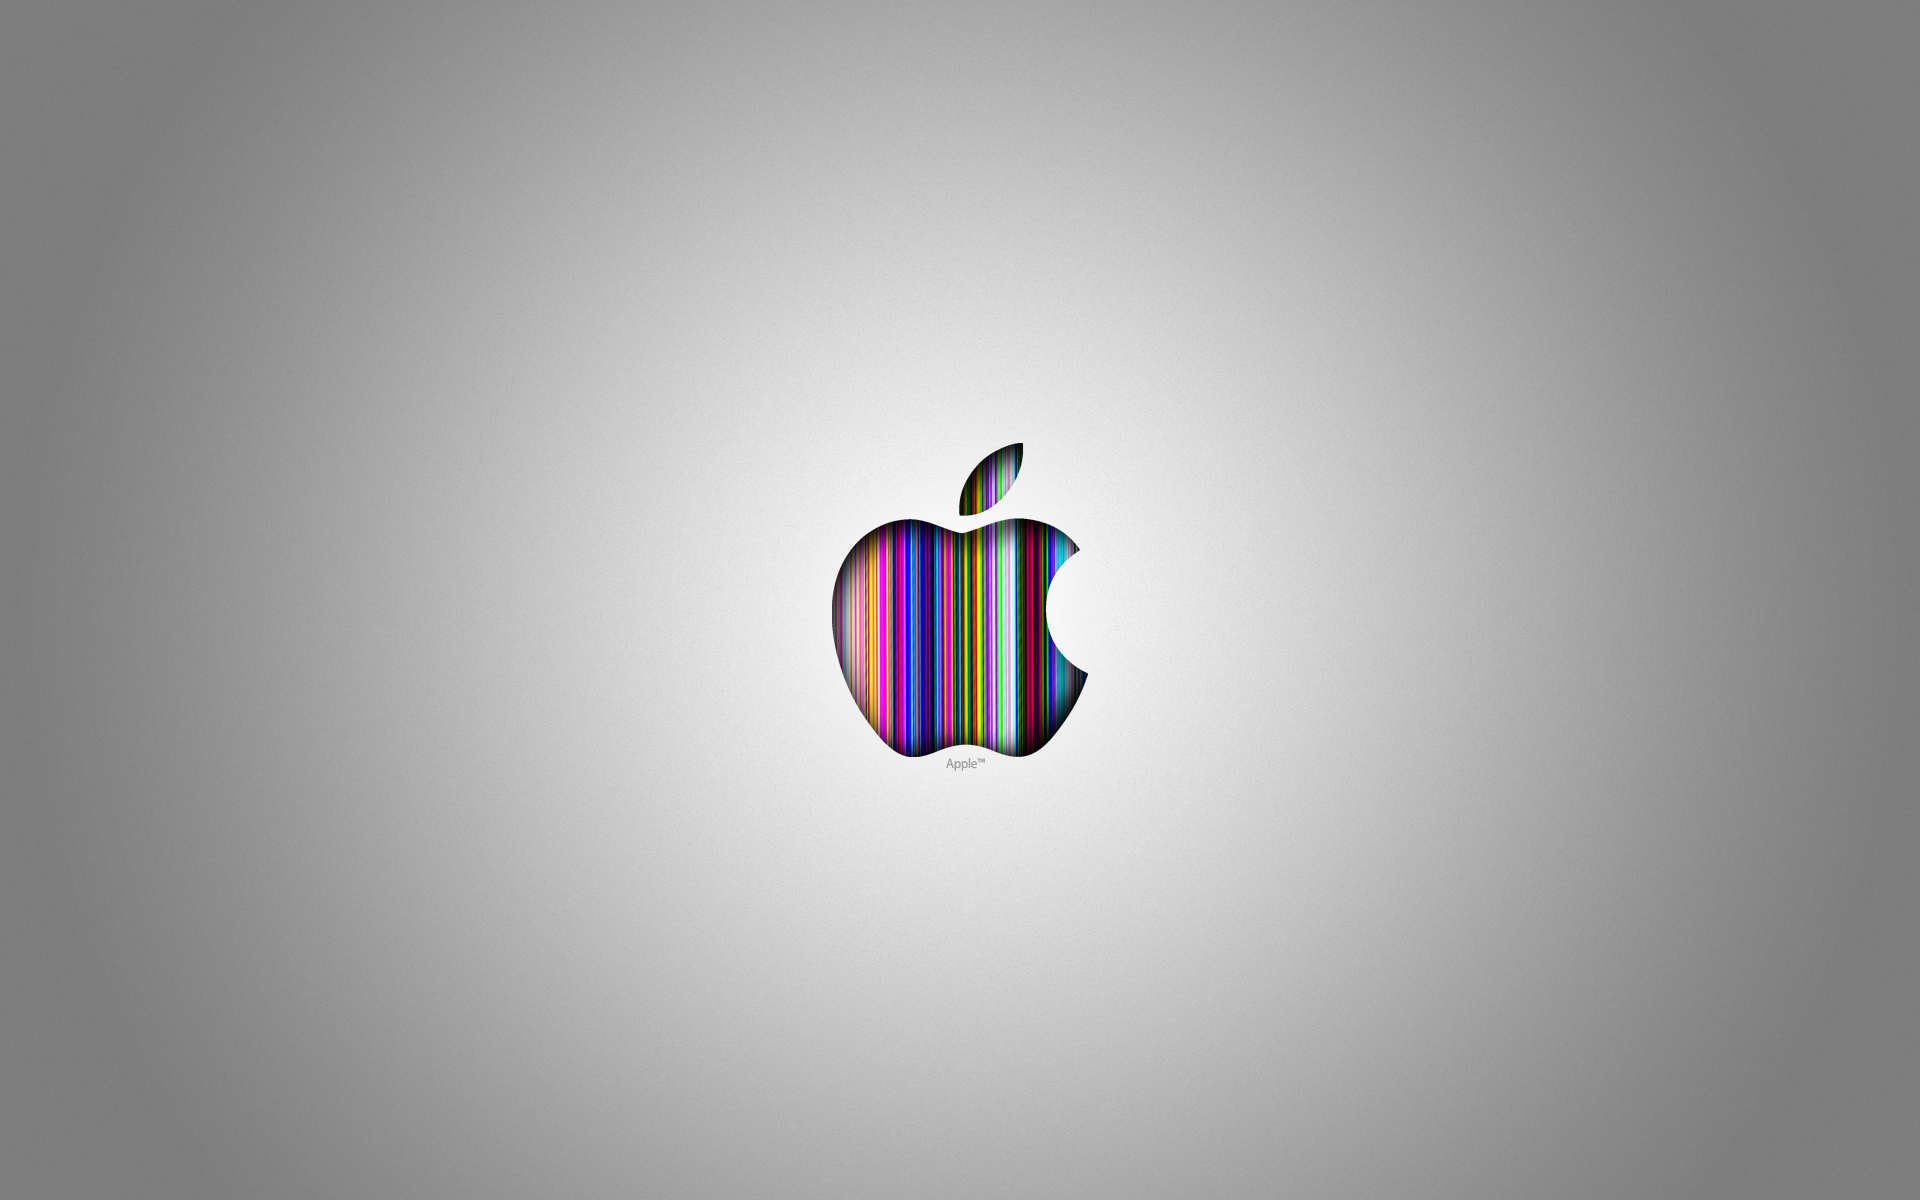 HD Wallpapers for Mac